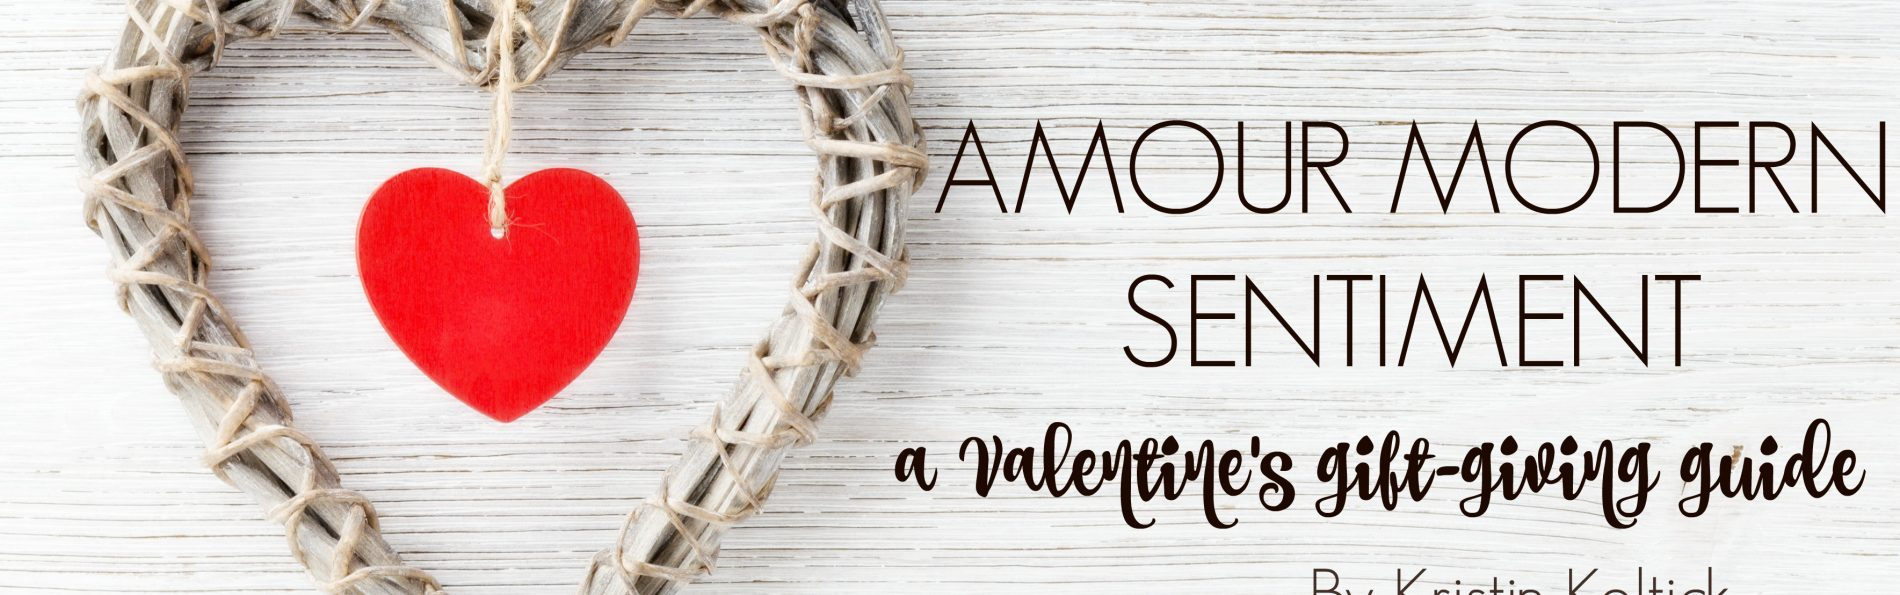 Amour Modern Sentiment: A Valentine's Gift-Giving Guide